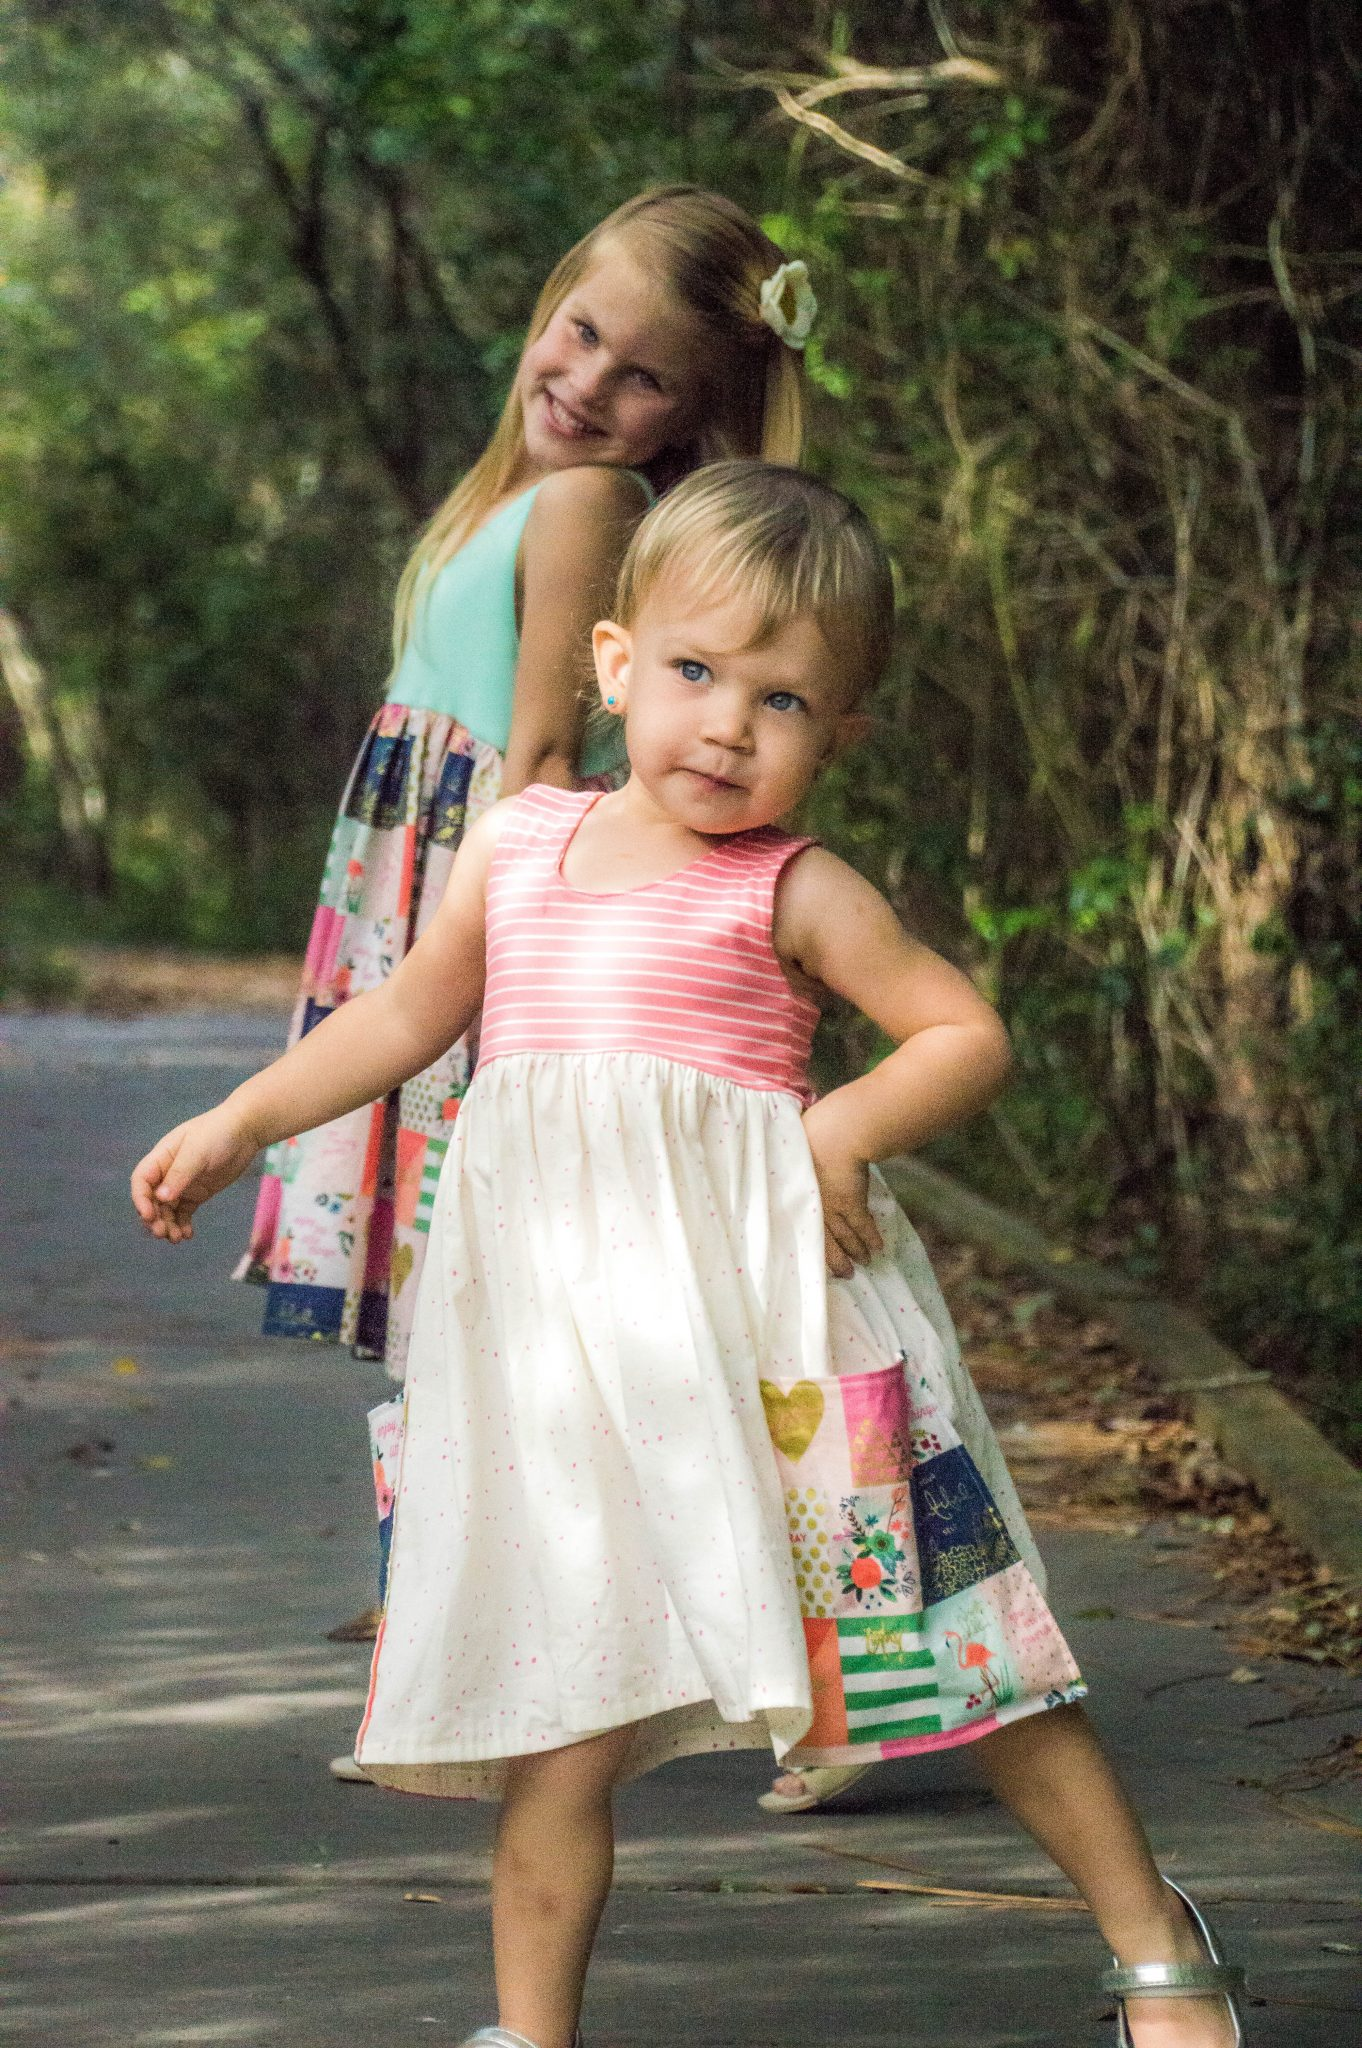 Sunflower Seams | Knit Lucy Bodice Add On, Simple LifePattern Company, PDF Sewing Pattern, Girls Size 2t-12, Baby Size NB-24 months, Dress, Top, Knit, Sleeveless, Racerback, Baby, Girl, Riley Blake, Summer, Spring, Back to School